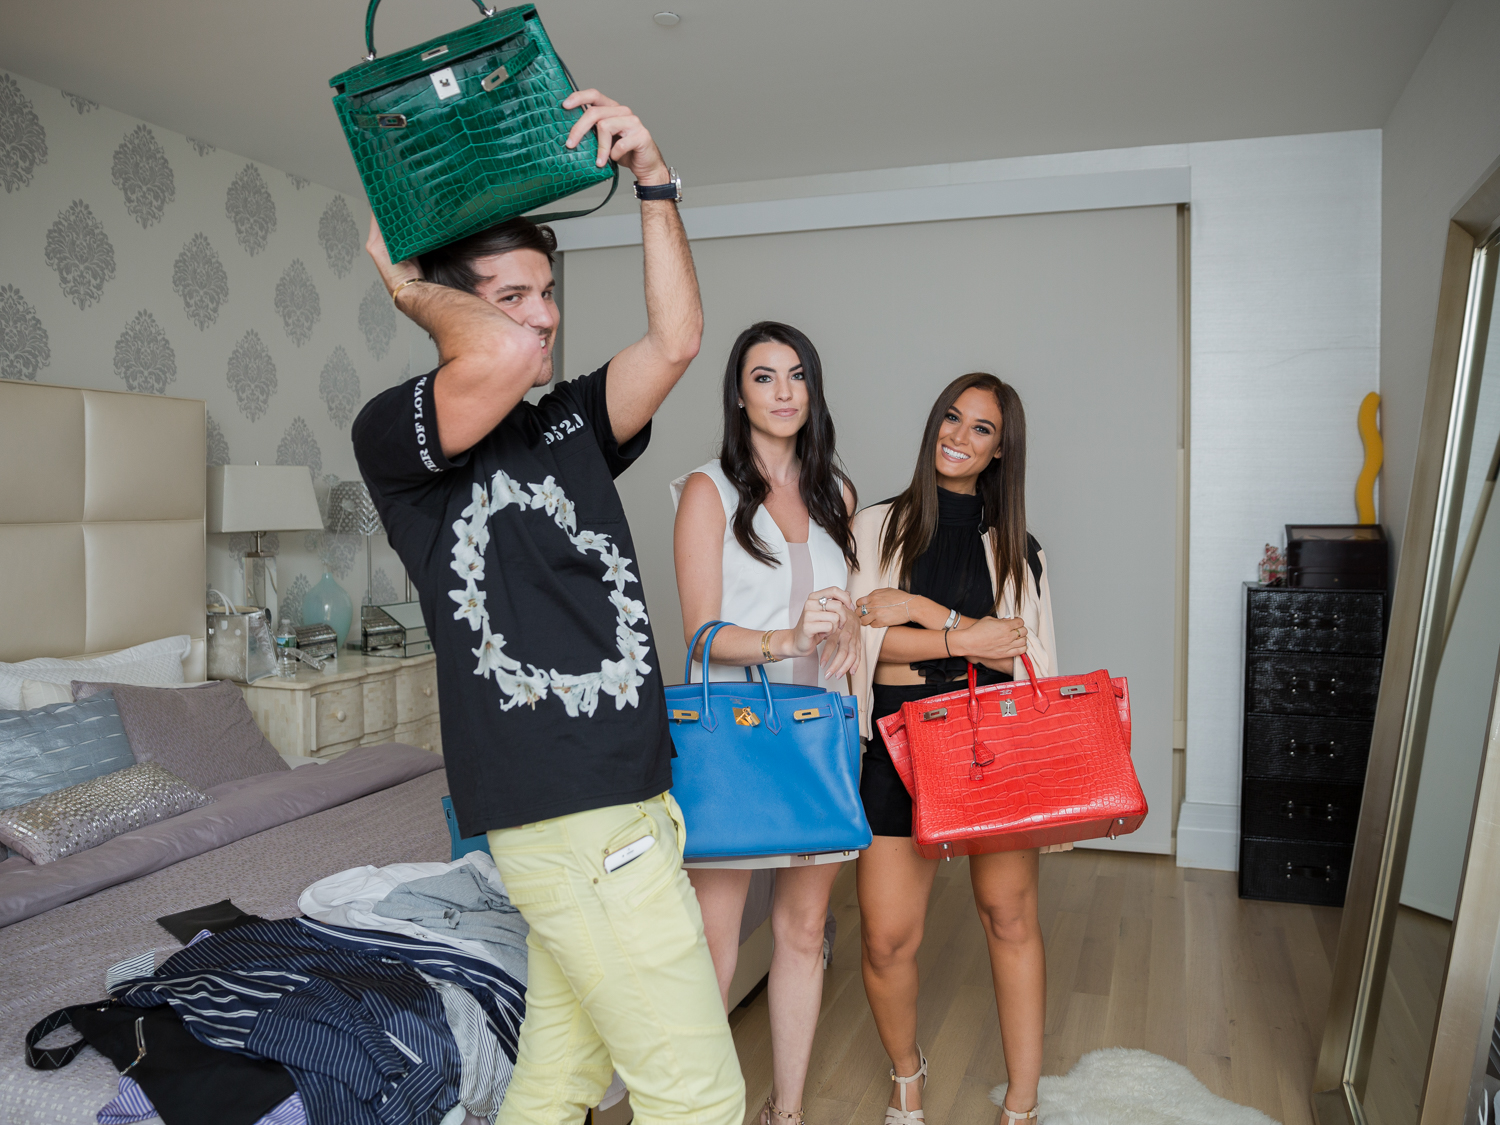 Posing with a few selections from William's Birkin bag collection.